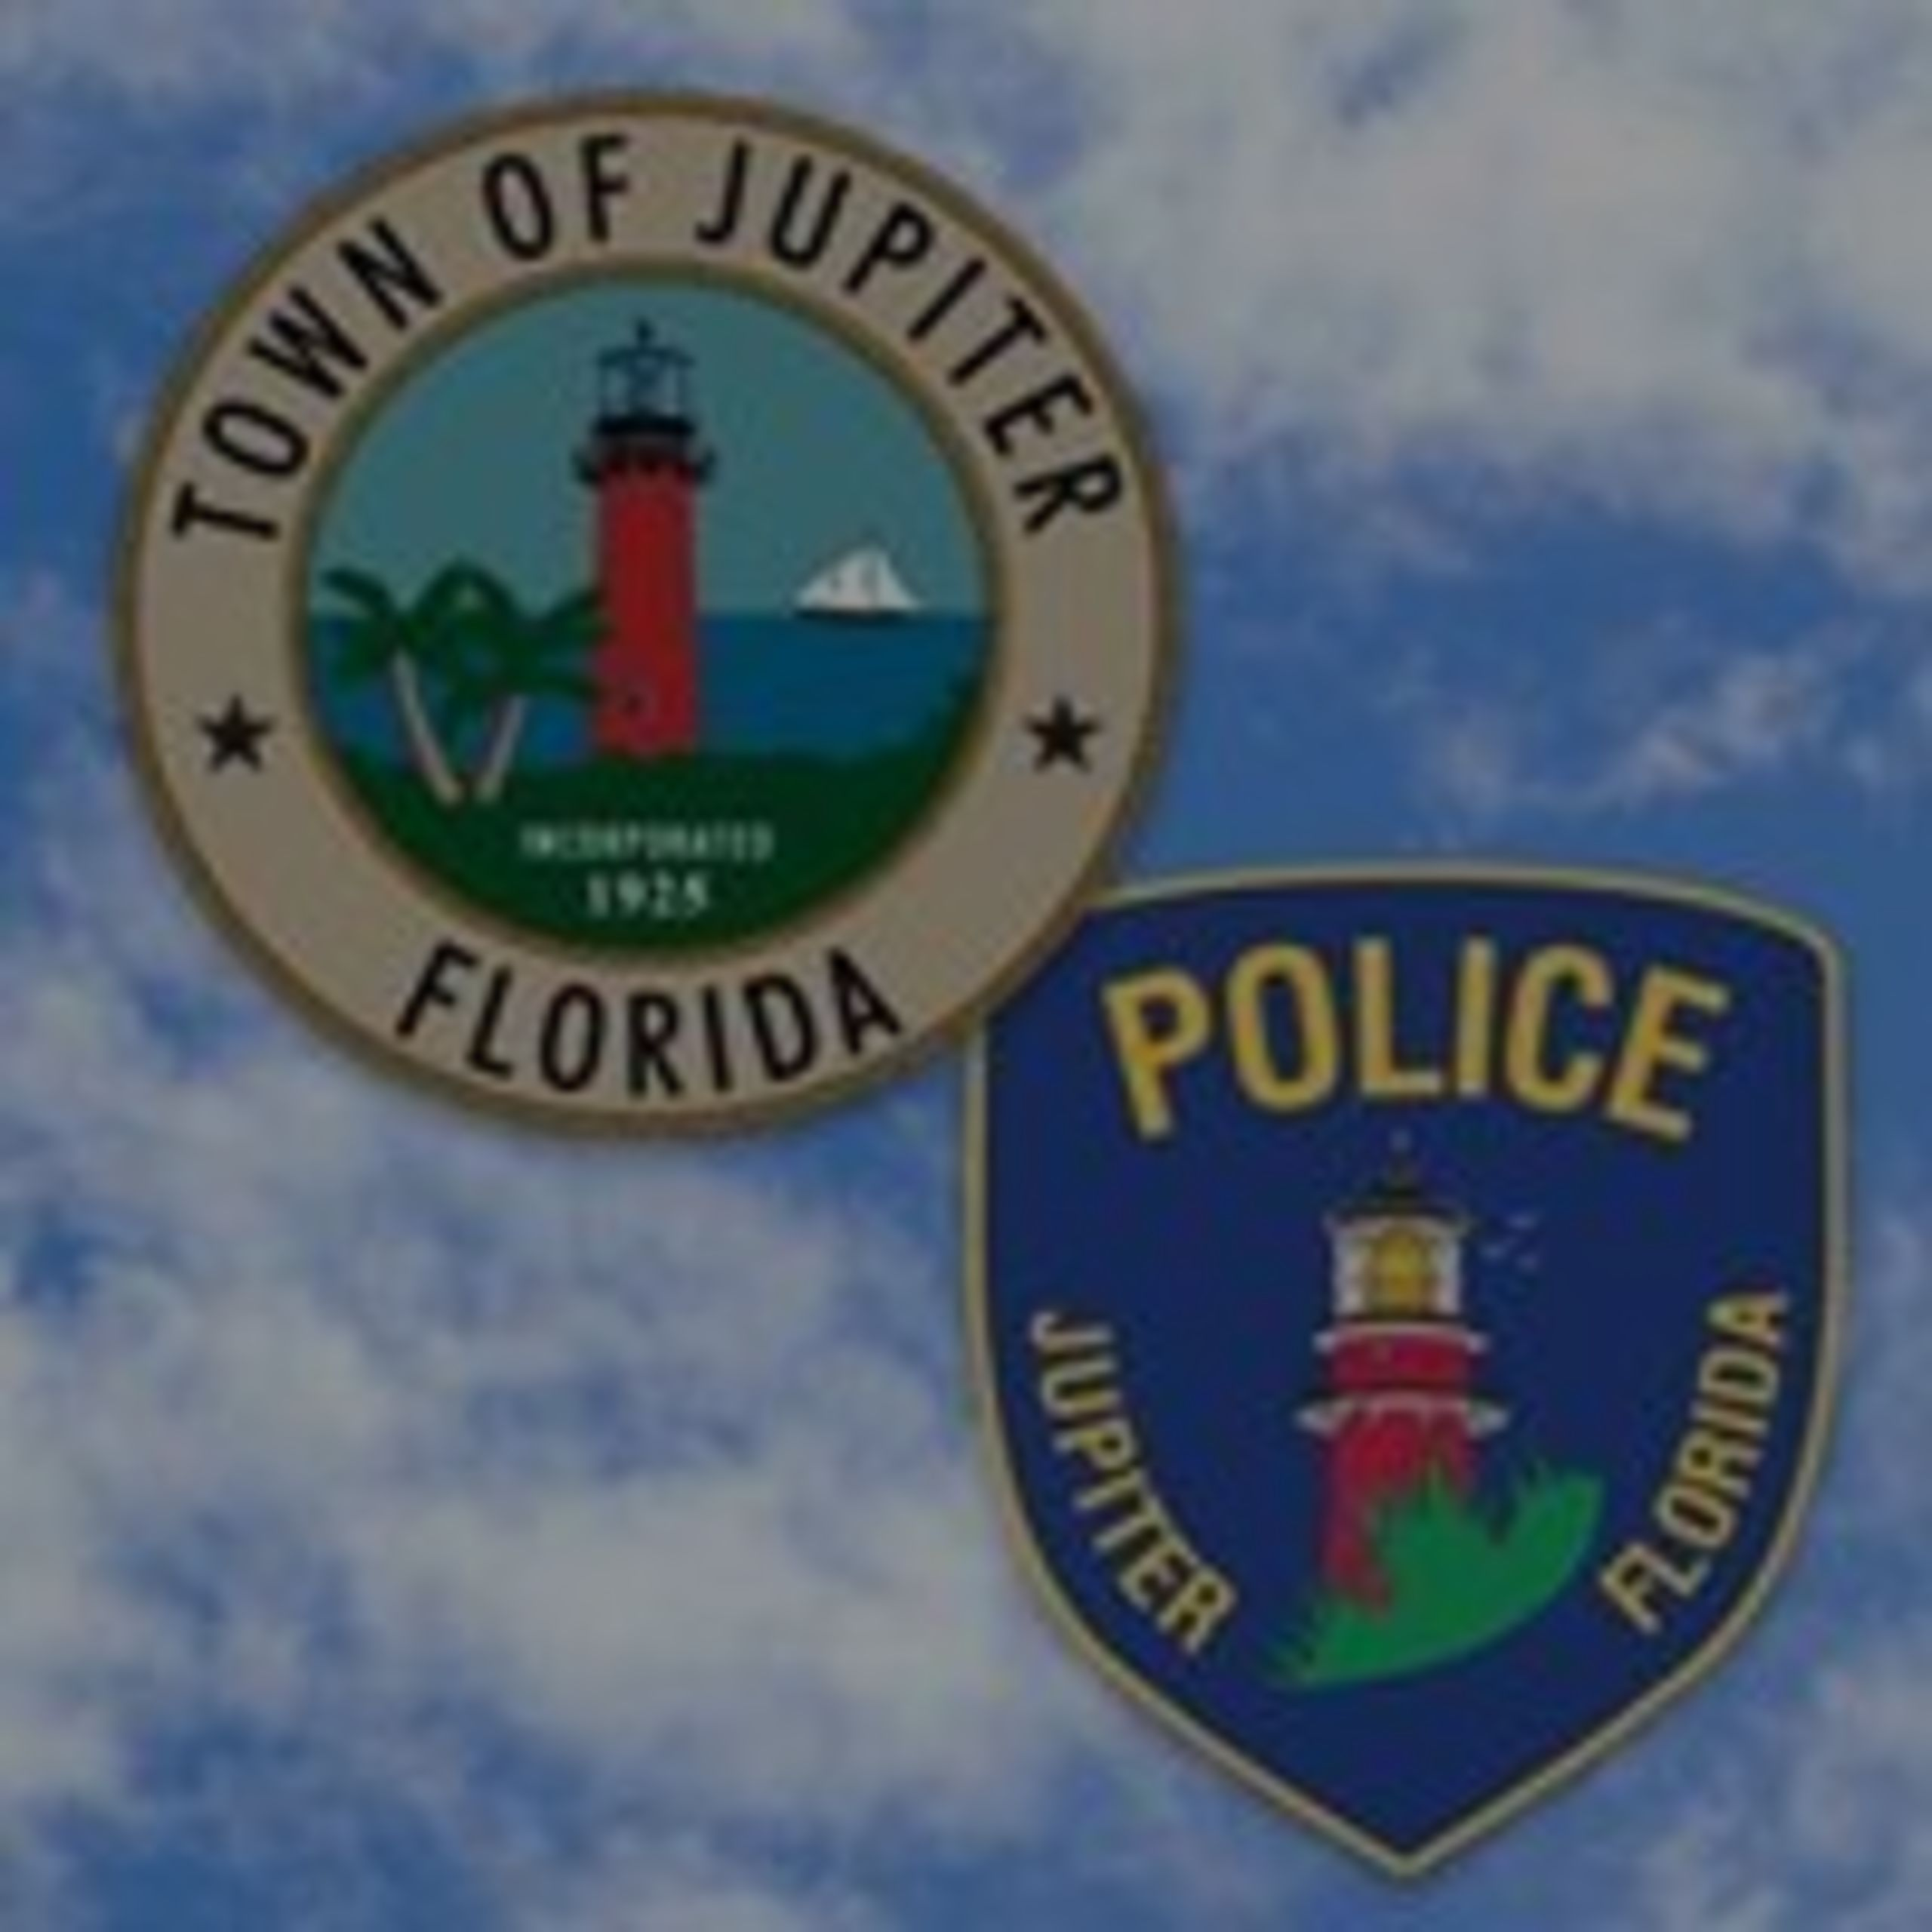 Town of Jupiter and Police Department Facebook Page